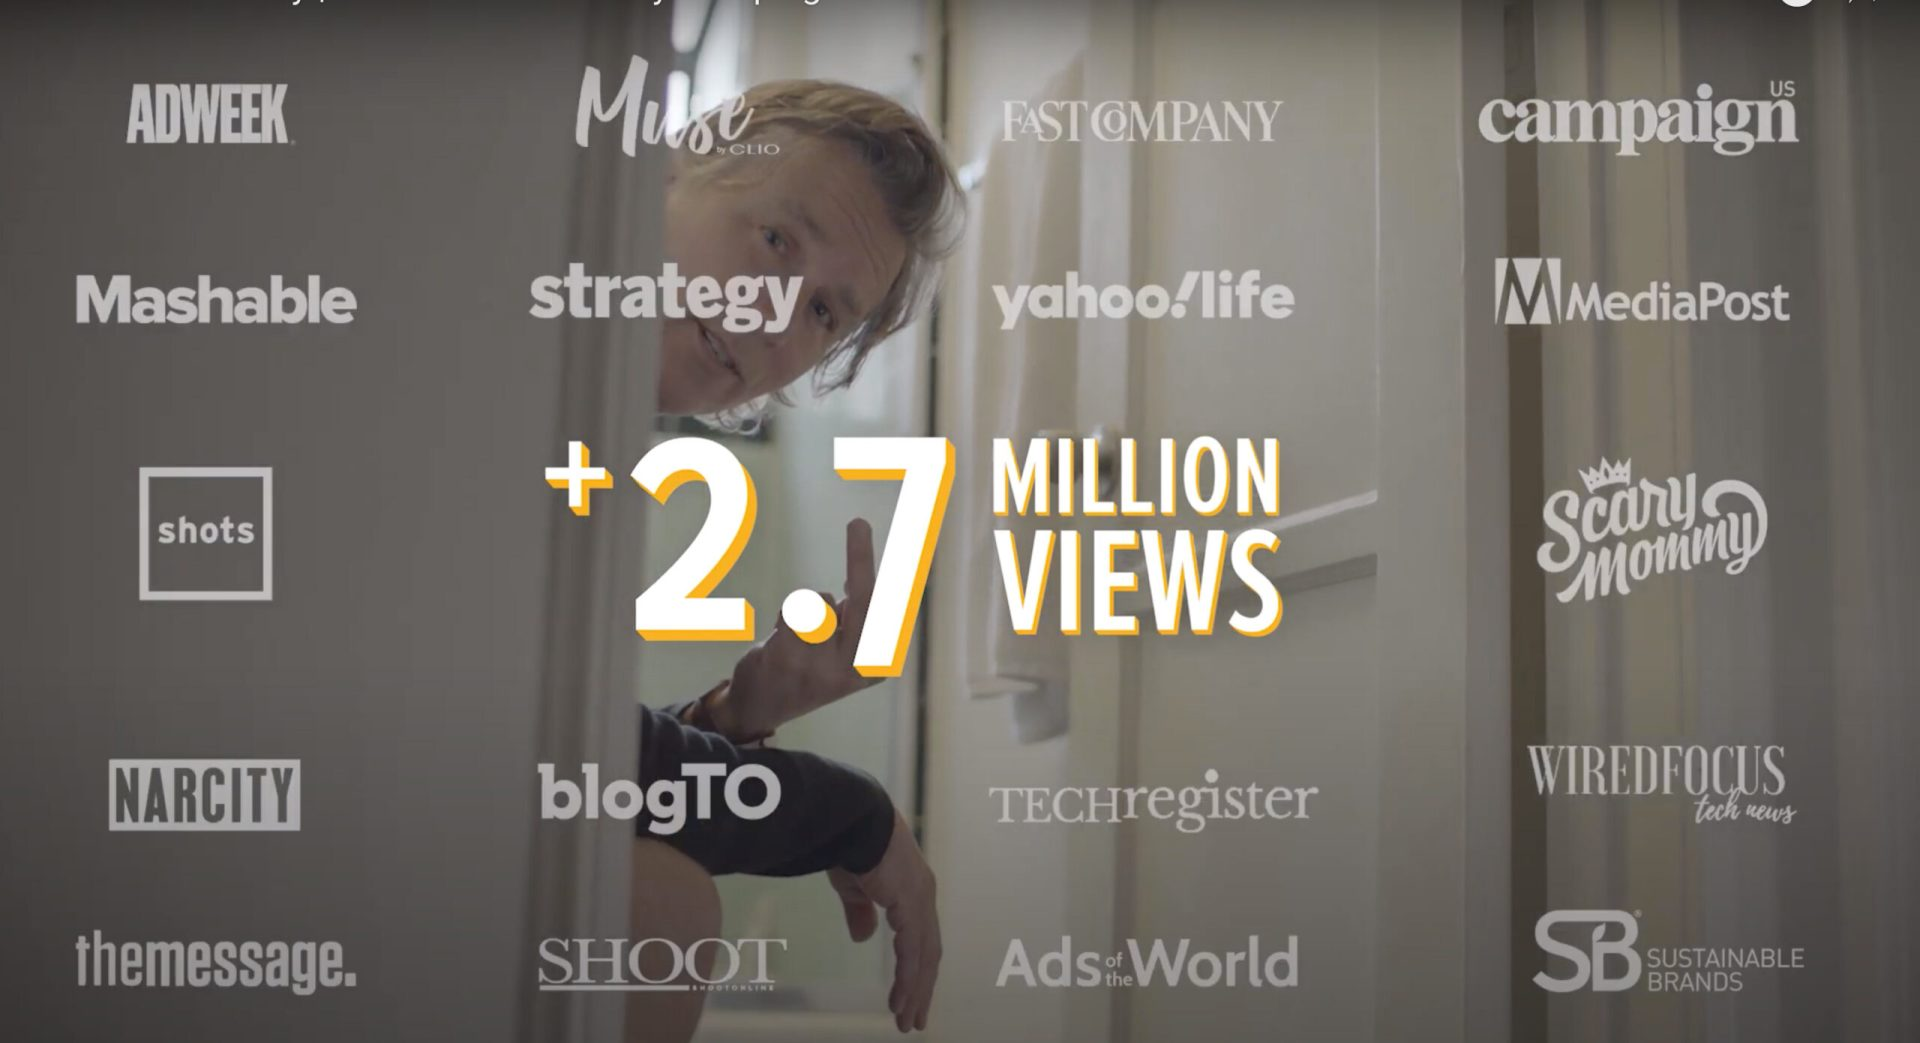 Logos of publications where campaign was featured along with impact 2.7 million views